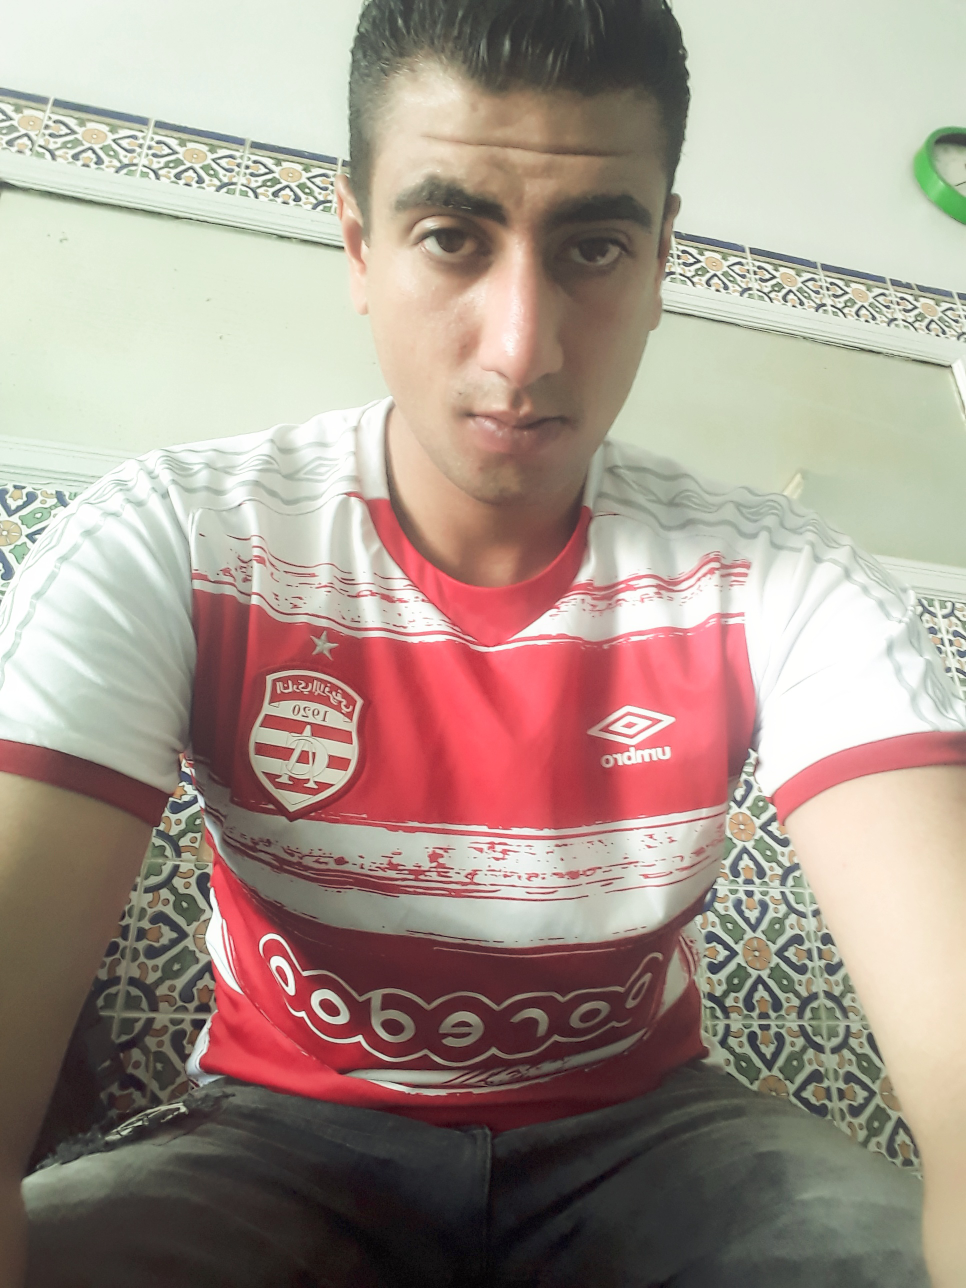 ahmed bousalha